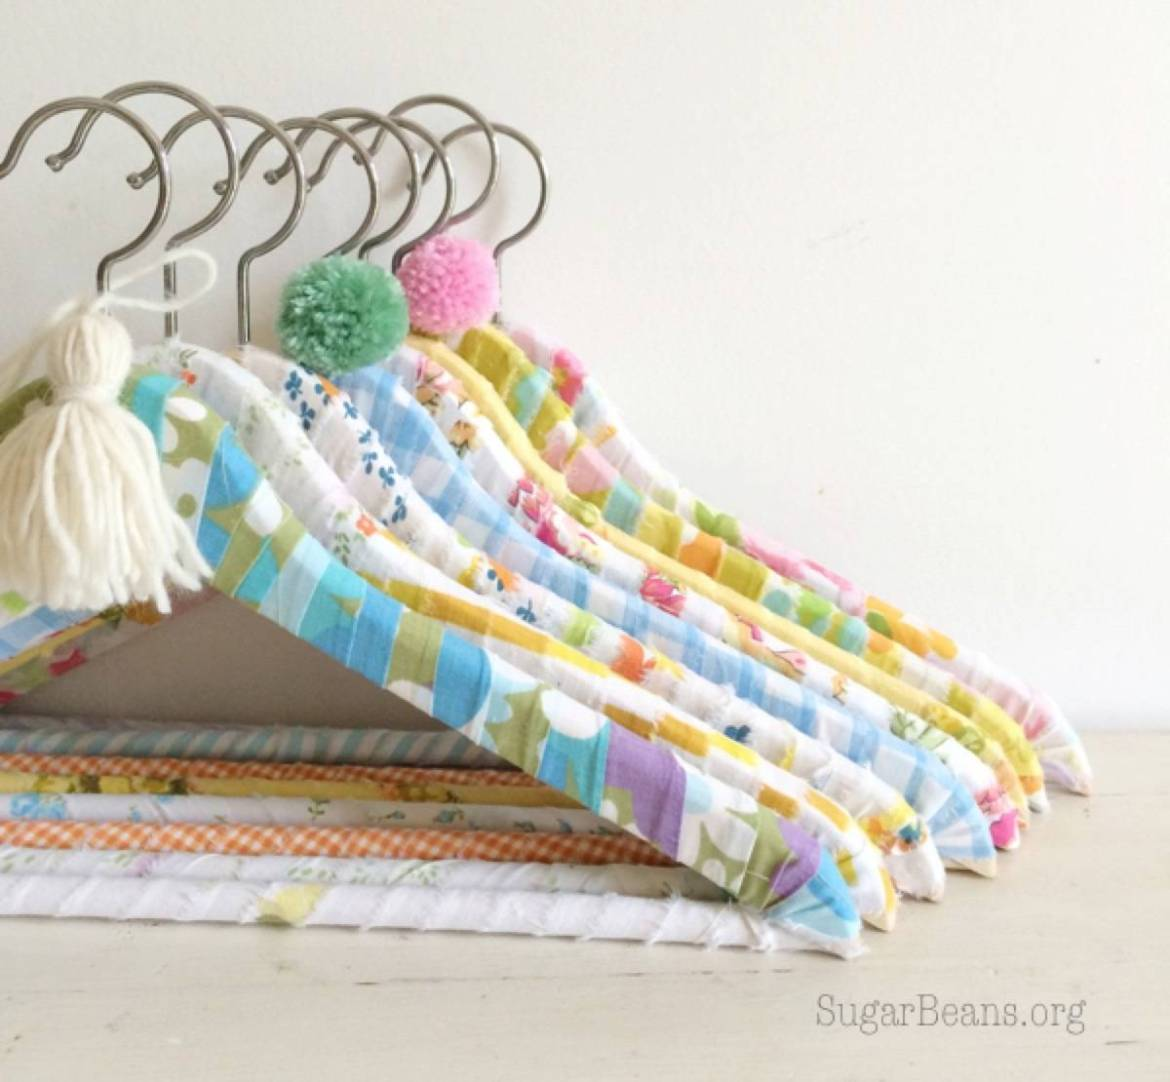 99 ways to use fabric to decorate your home   Wrapped coat hangers